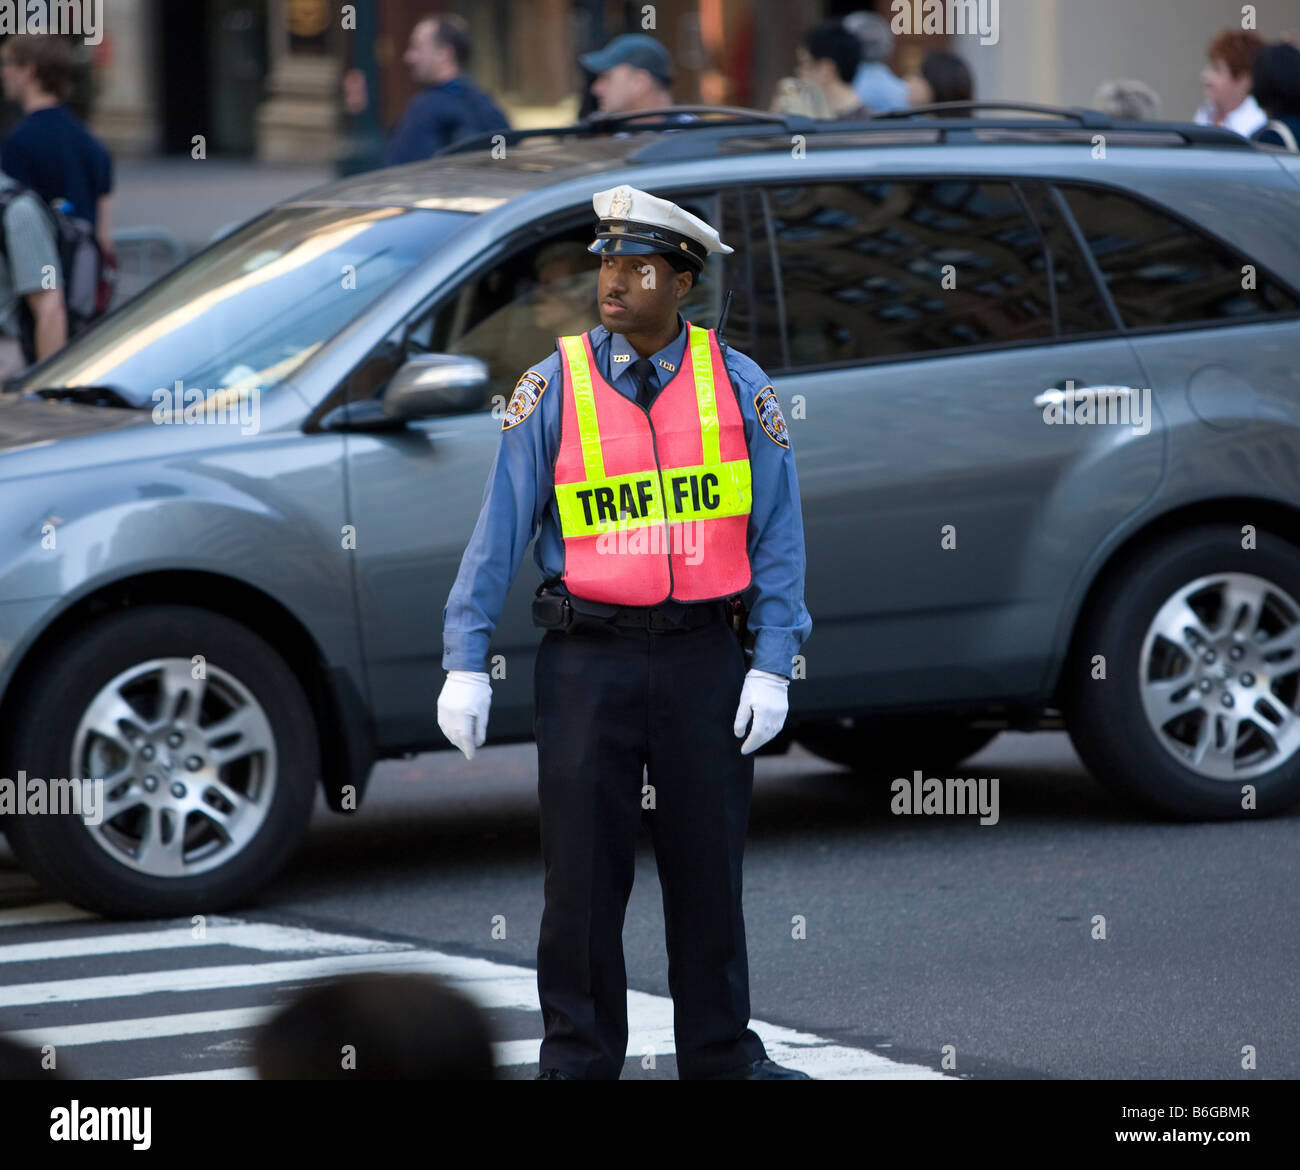 Traffic cop 42nd Street and Fifth Avenue New York City Stock Photo